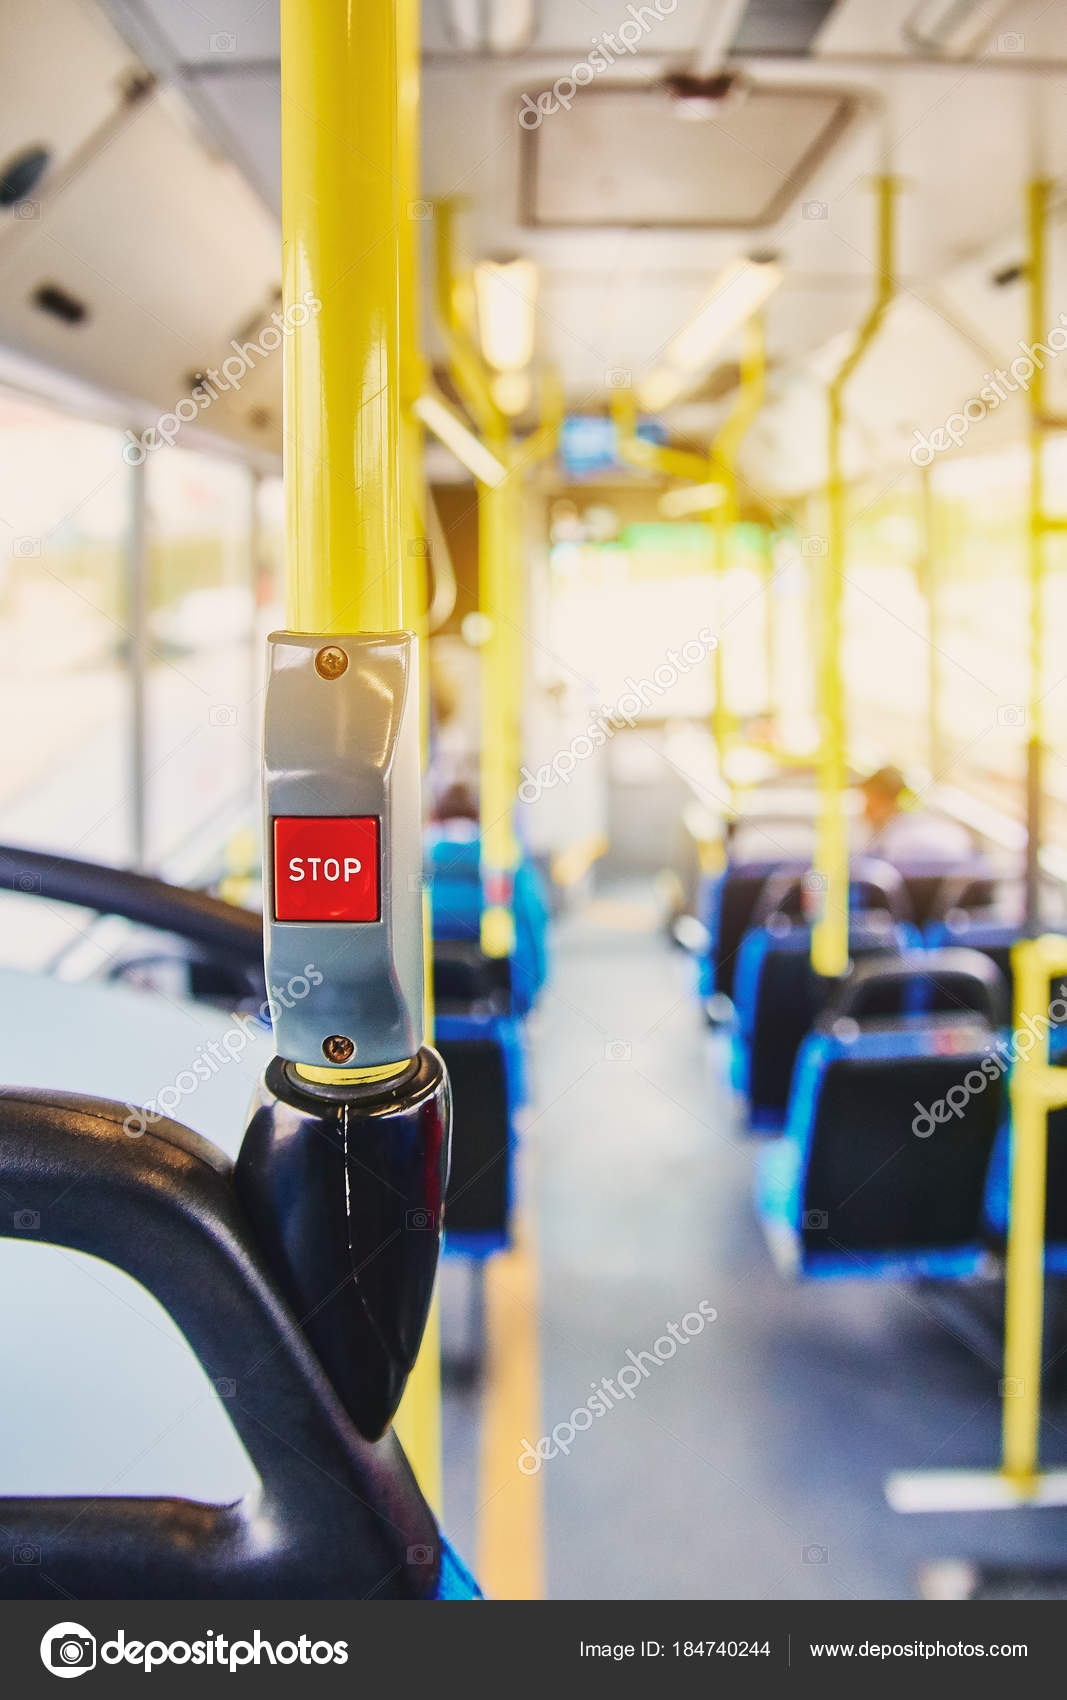 Garage Seat Lens Red Button Stop On The Bus Bus With Yellow Handrails And Blue